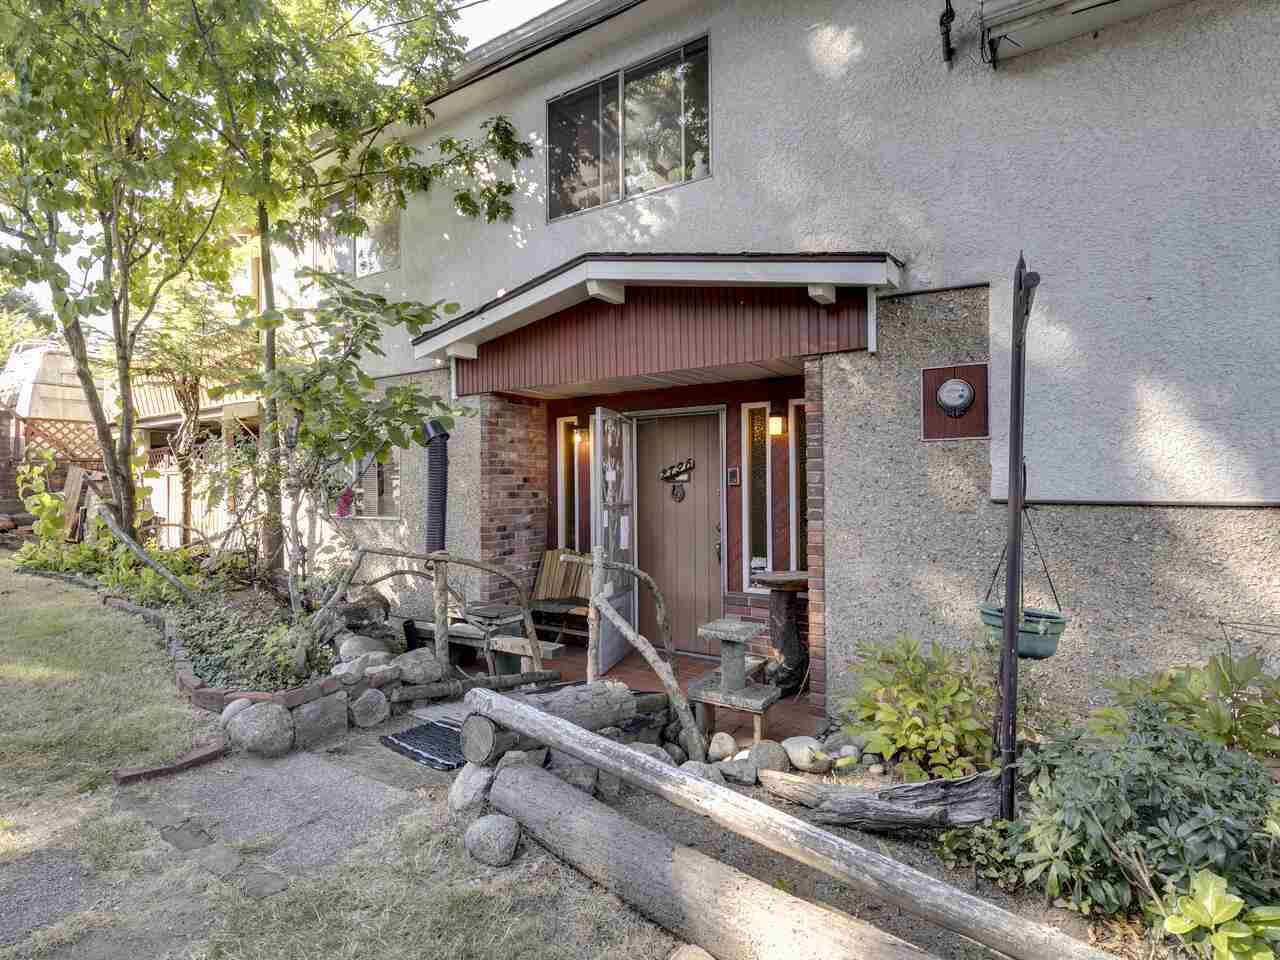 """Photo 11: Photos: 2796 E 4TH Avenue in Vancouver: Renfrew VE House for sale in """"Renfrew Heights"""" (Vancouver East)  : MLS®# R2496647"""